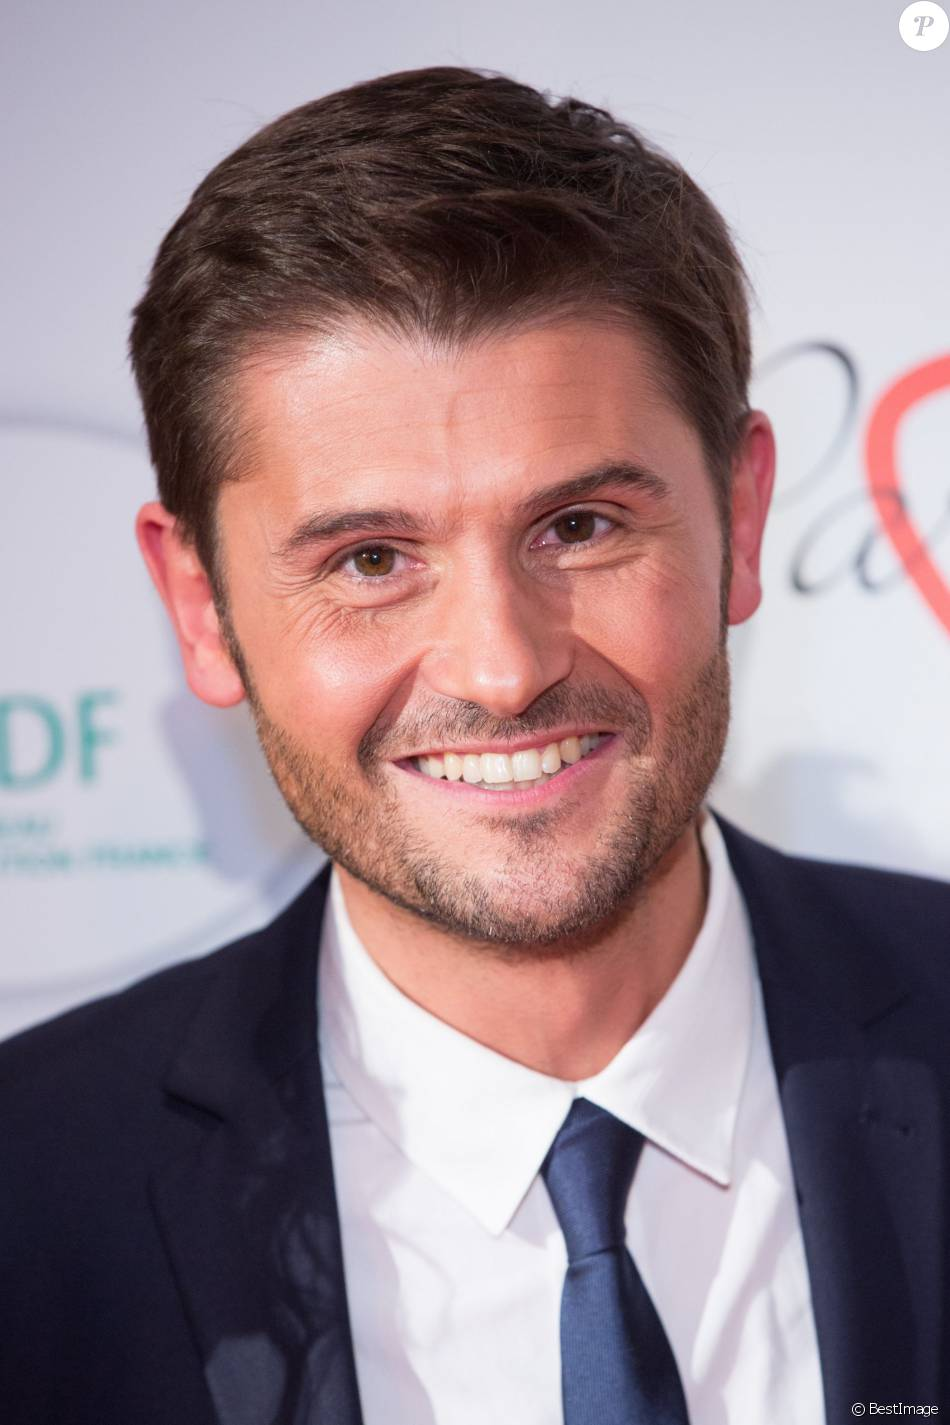 personnage jovany 22/08/17 bravo Ajonc - Page 2 2067628-christophe-beaugrand-personnalites-au-950x0-3